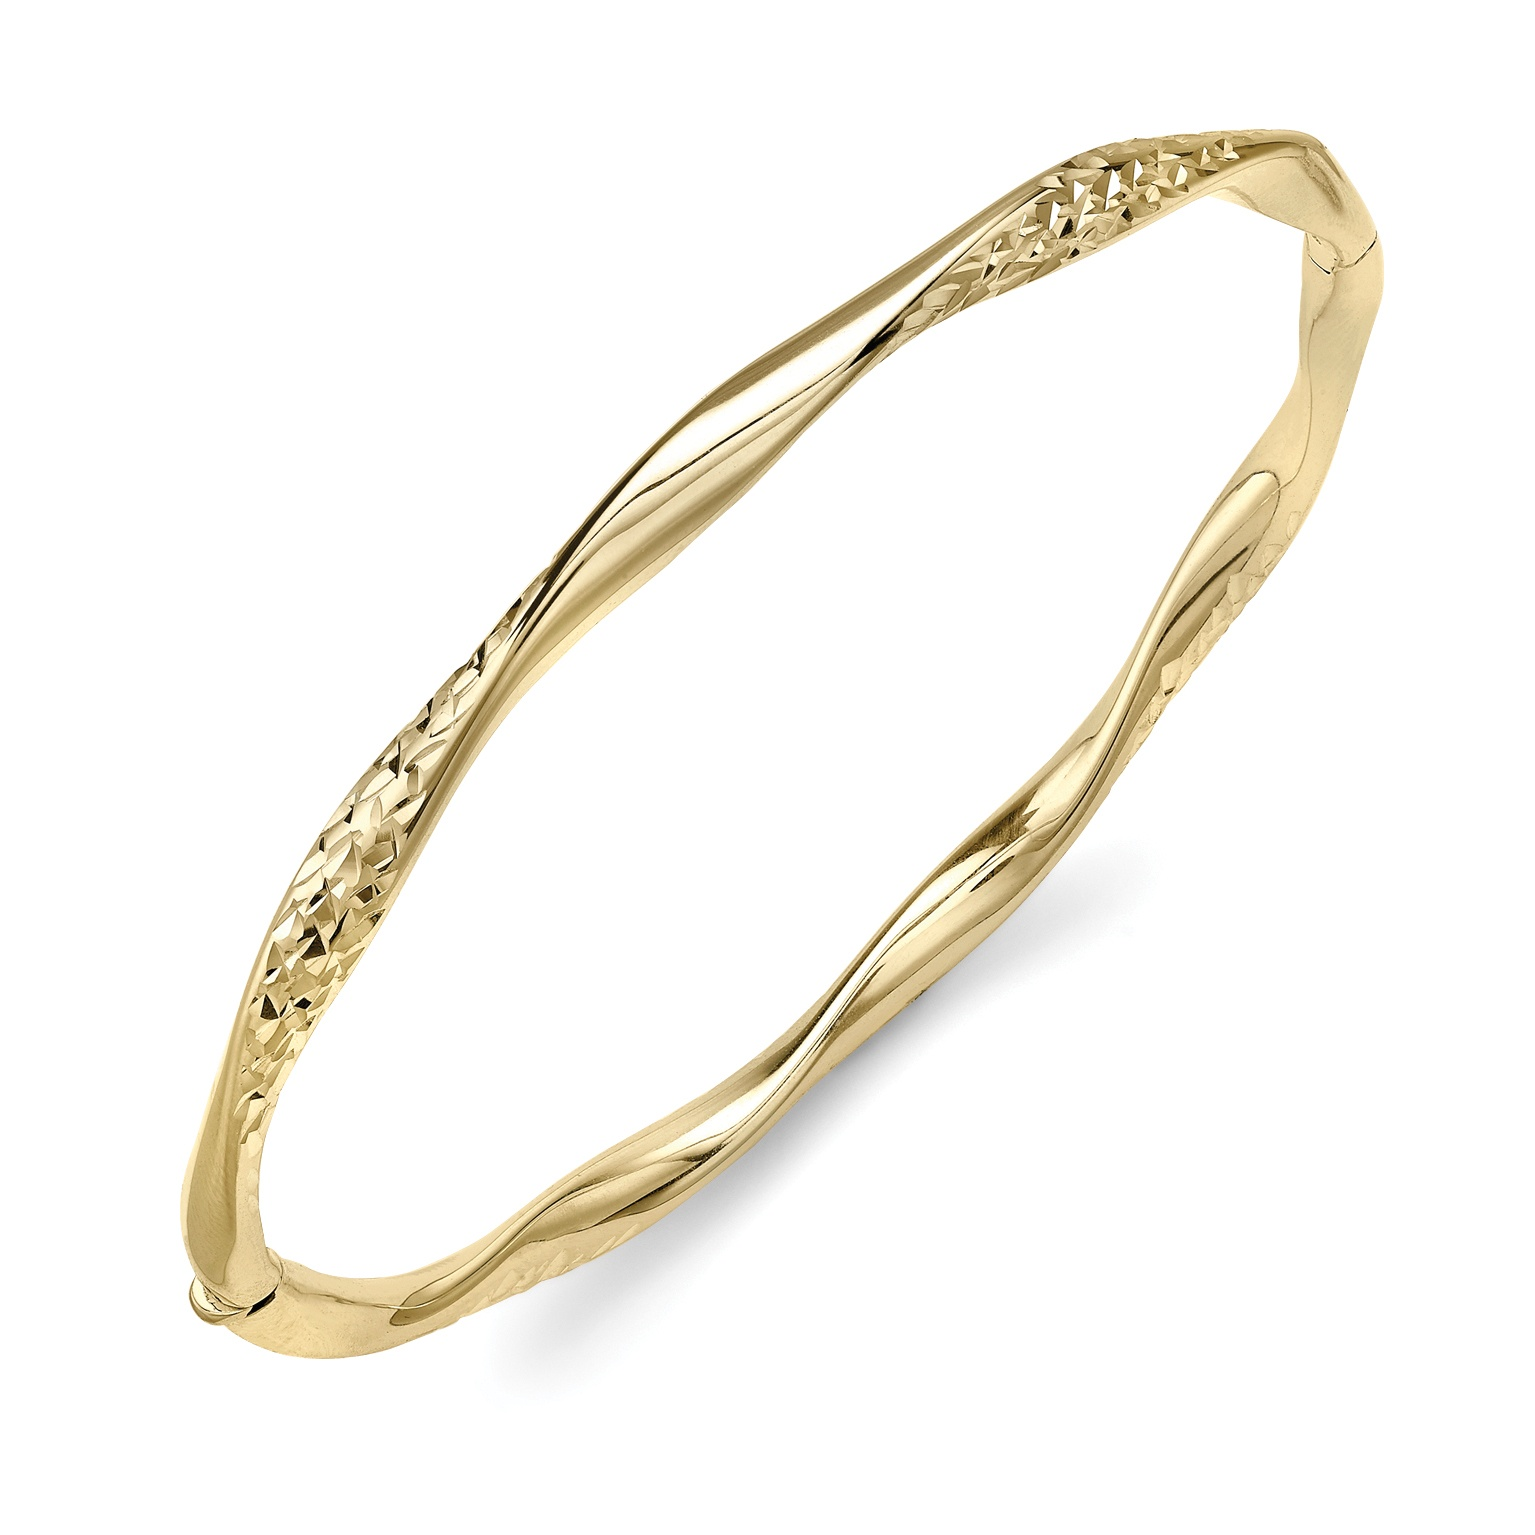 9ct Patterned Twist Design Bangle